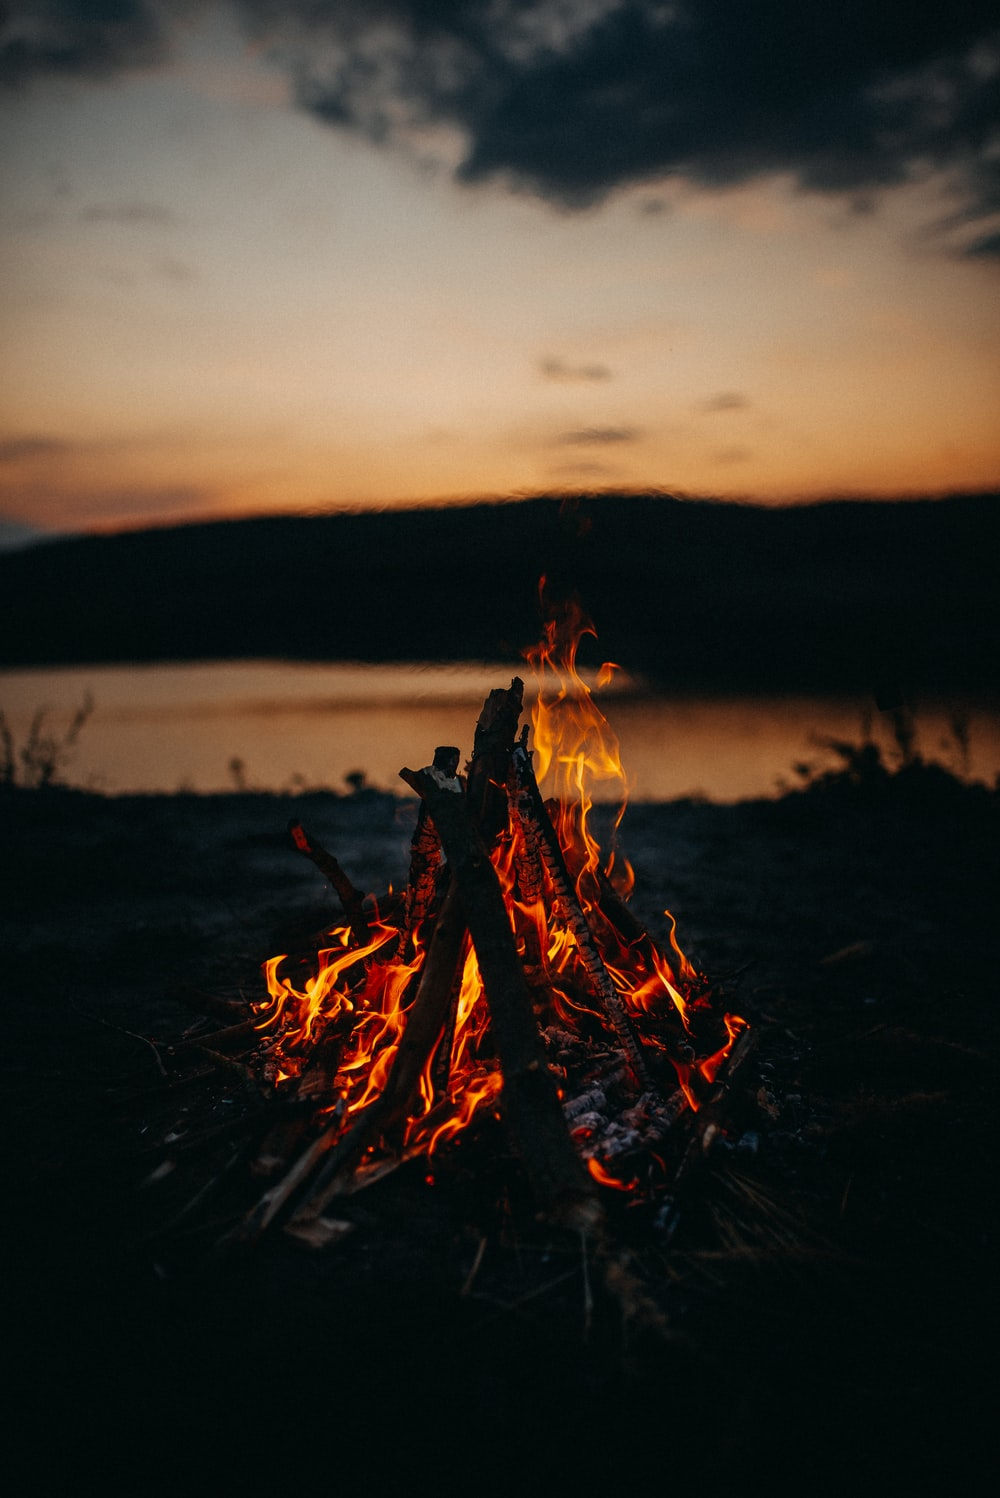 bonfire in green field during night time